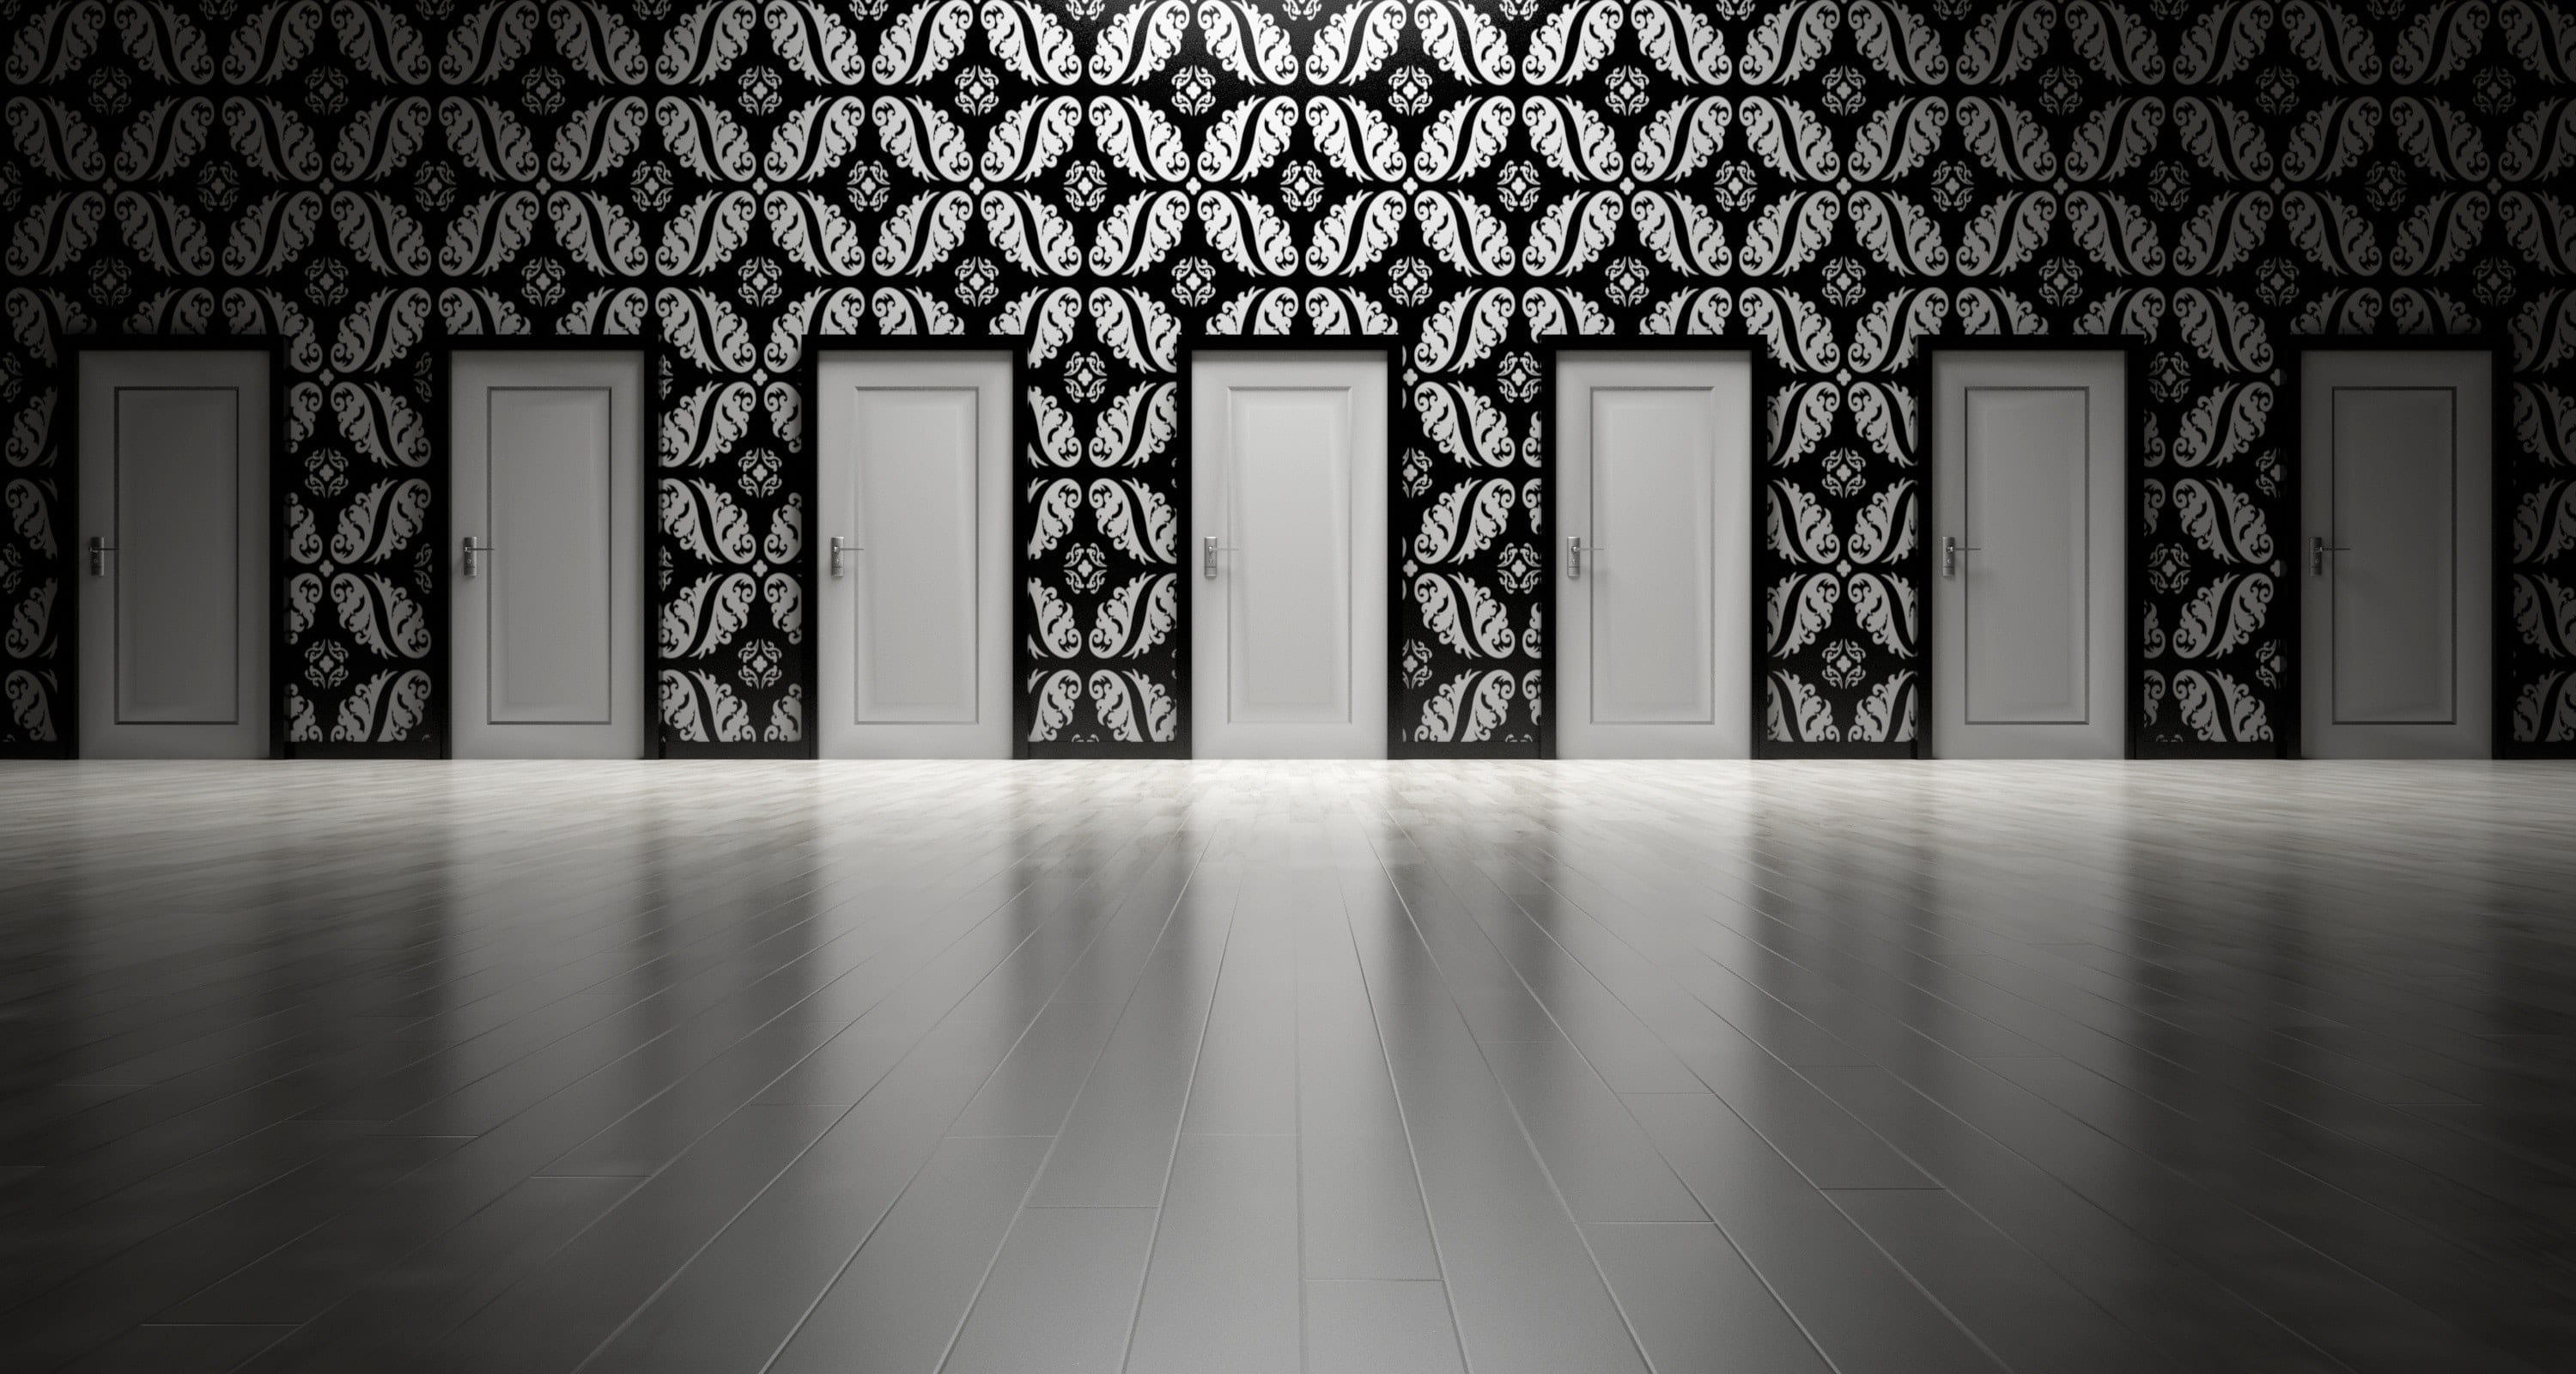 large black and white room full of closed doors